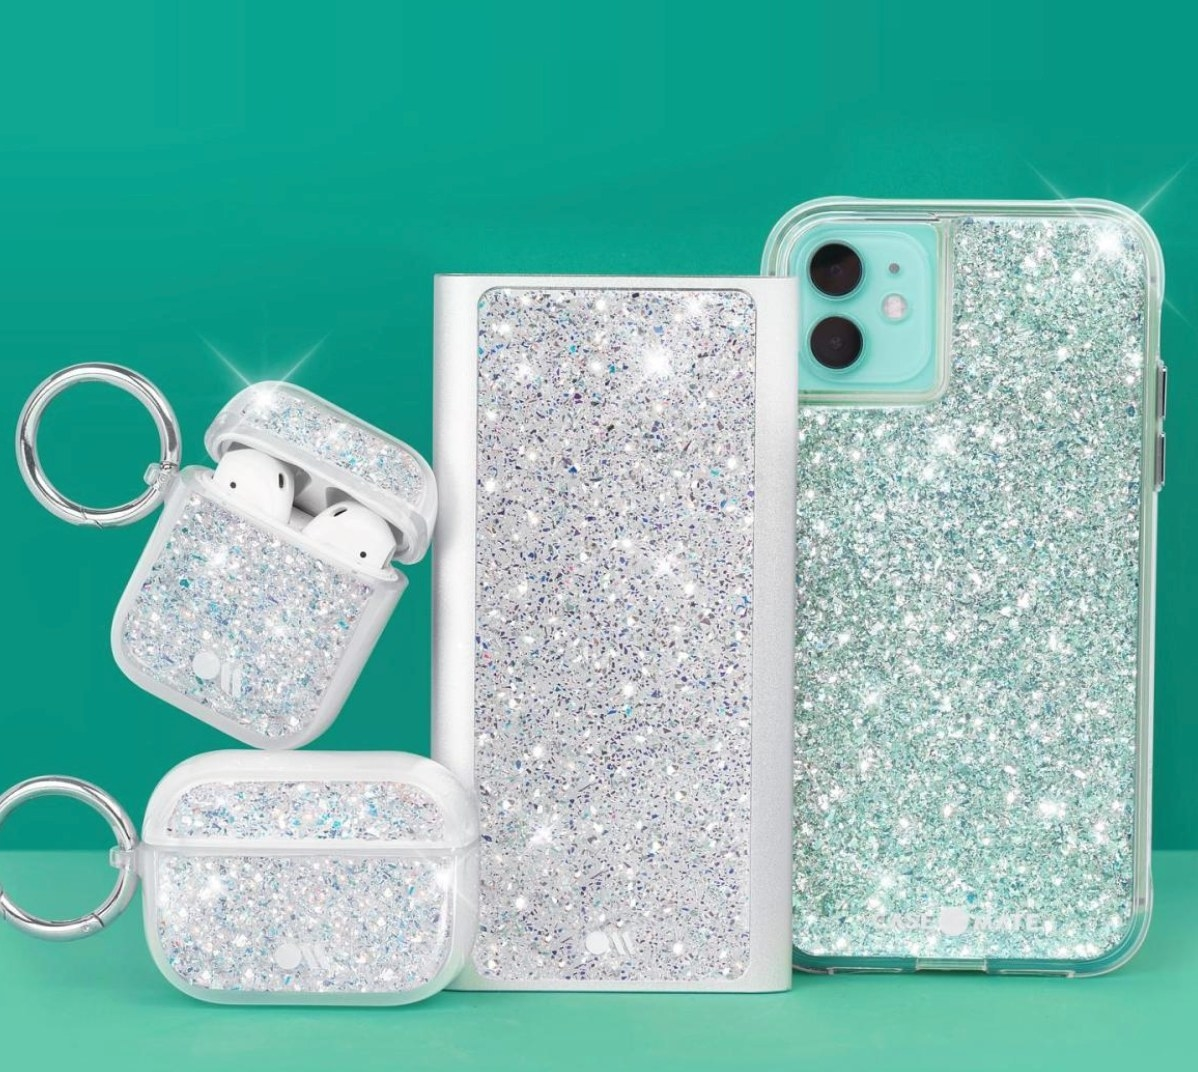 The glittery phone case